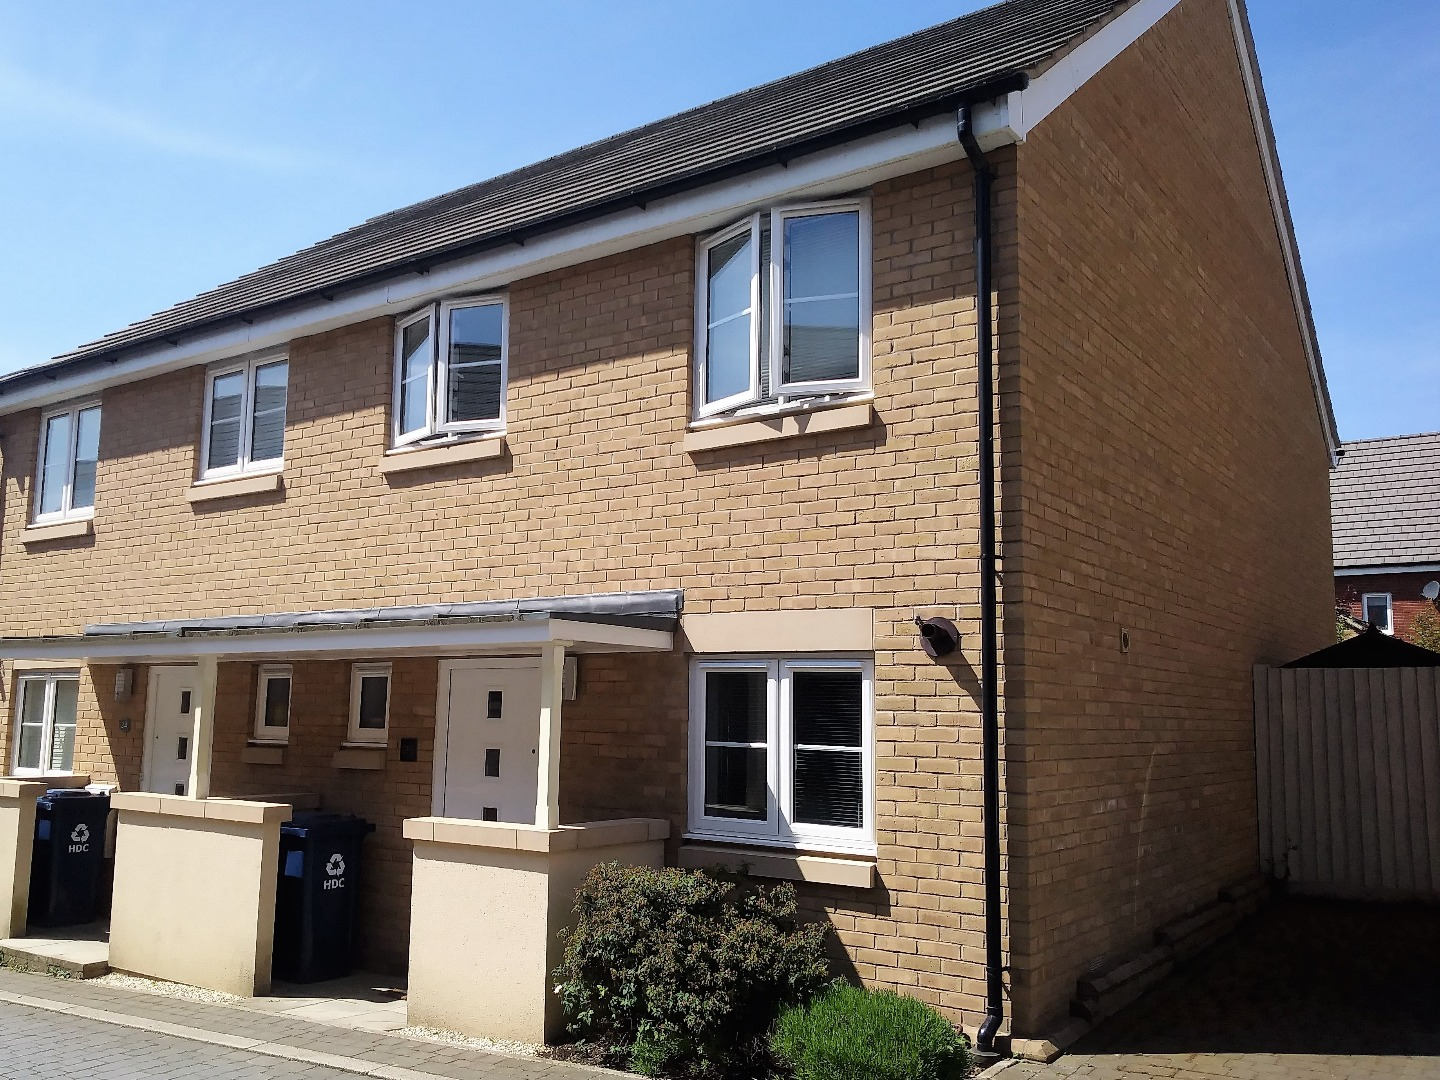 3 bed House for sale on Anderson Close, Loves Farm, St Neots - Property Image 1